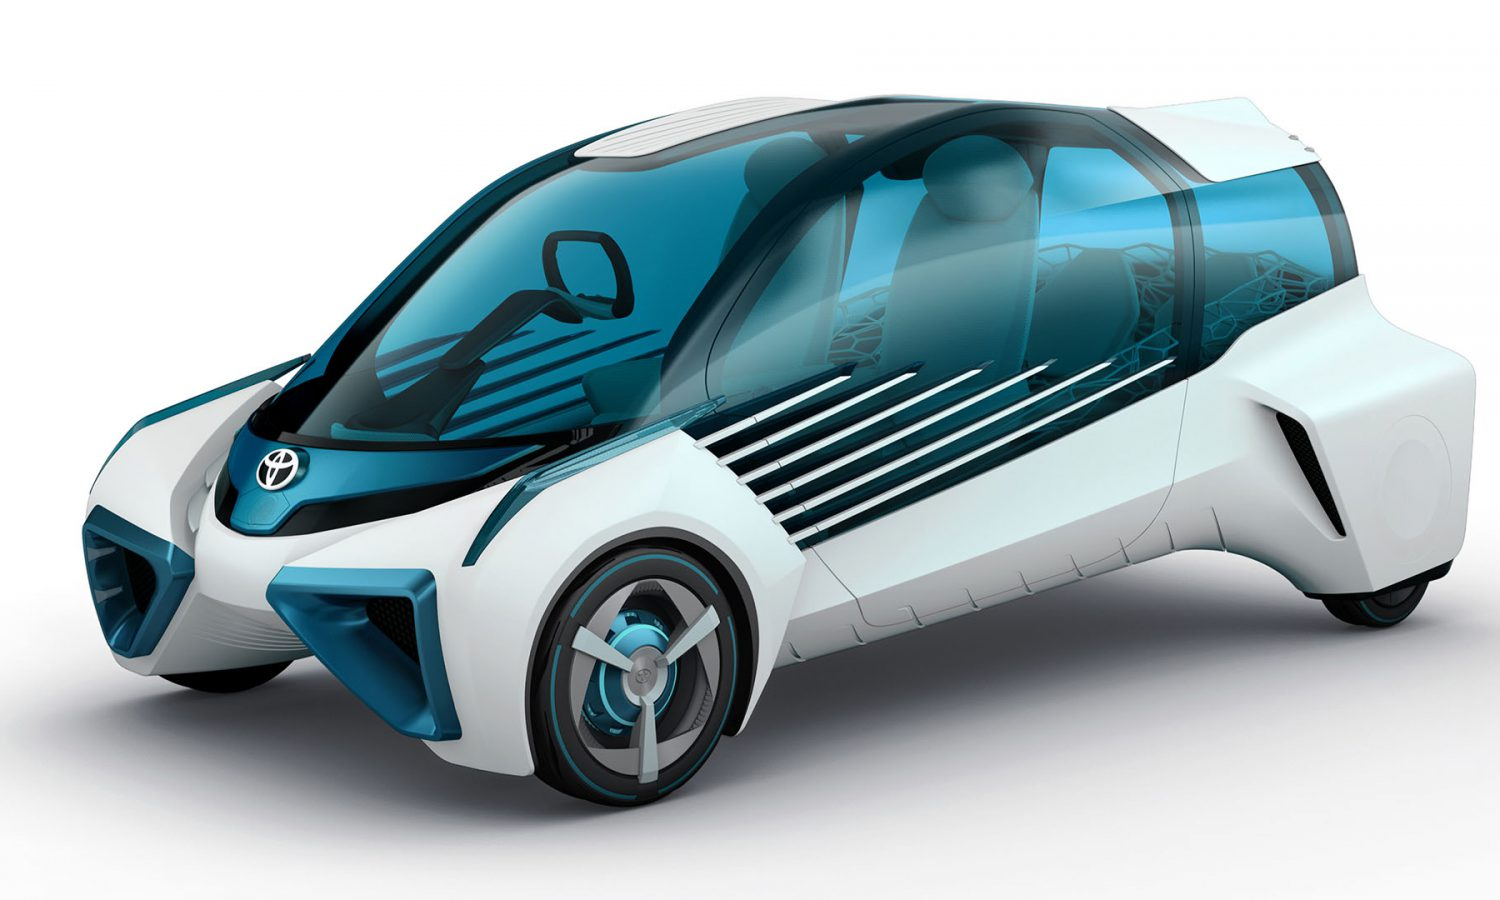 Toyota to Debut Three New Concept Cars at Tokyo Motor Show